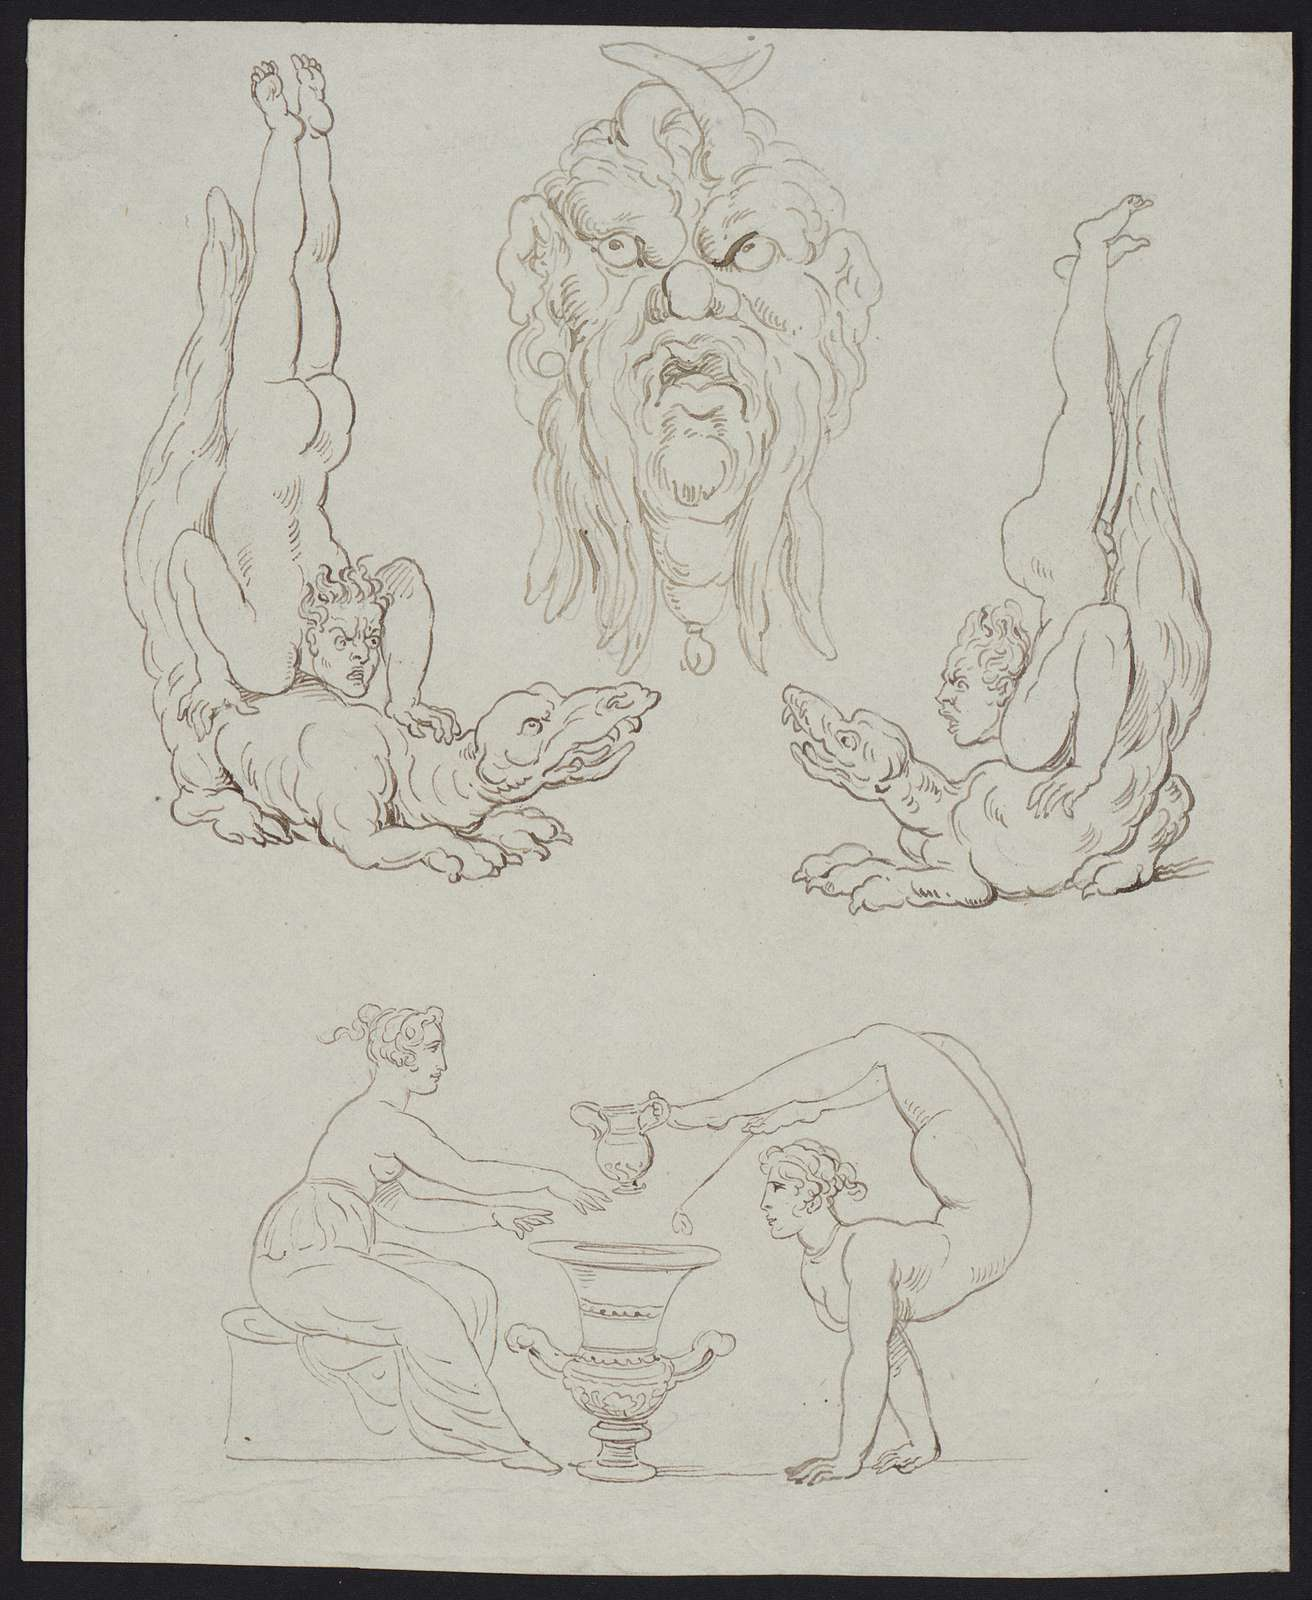 [Study drawings of monsters, men, and acrobats]